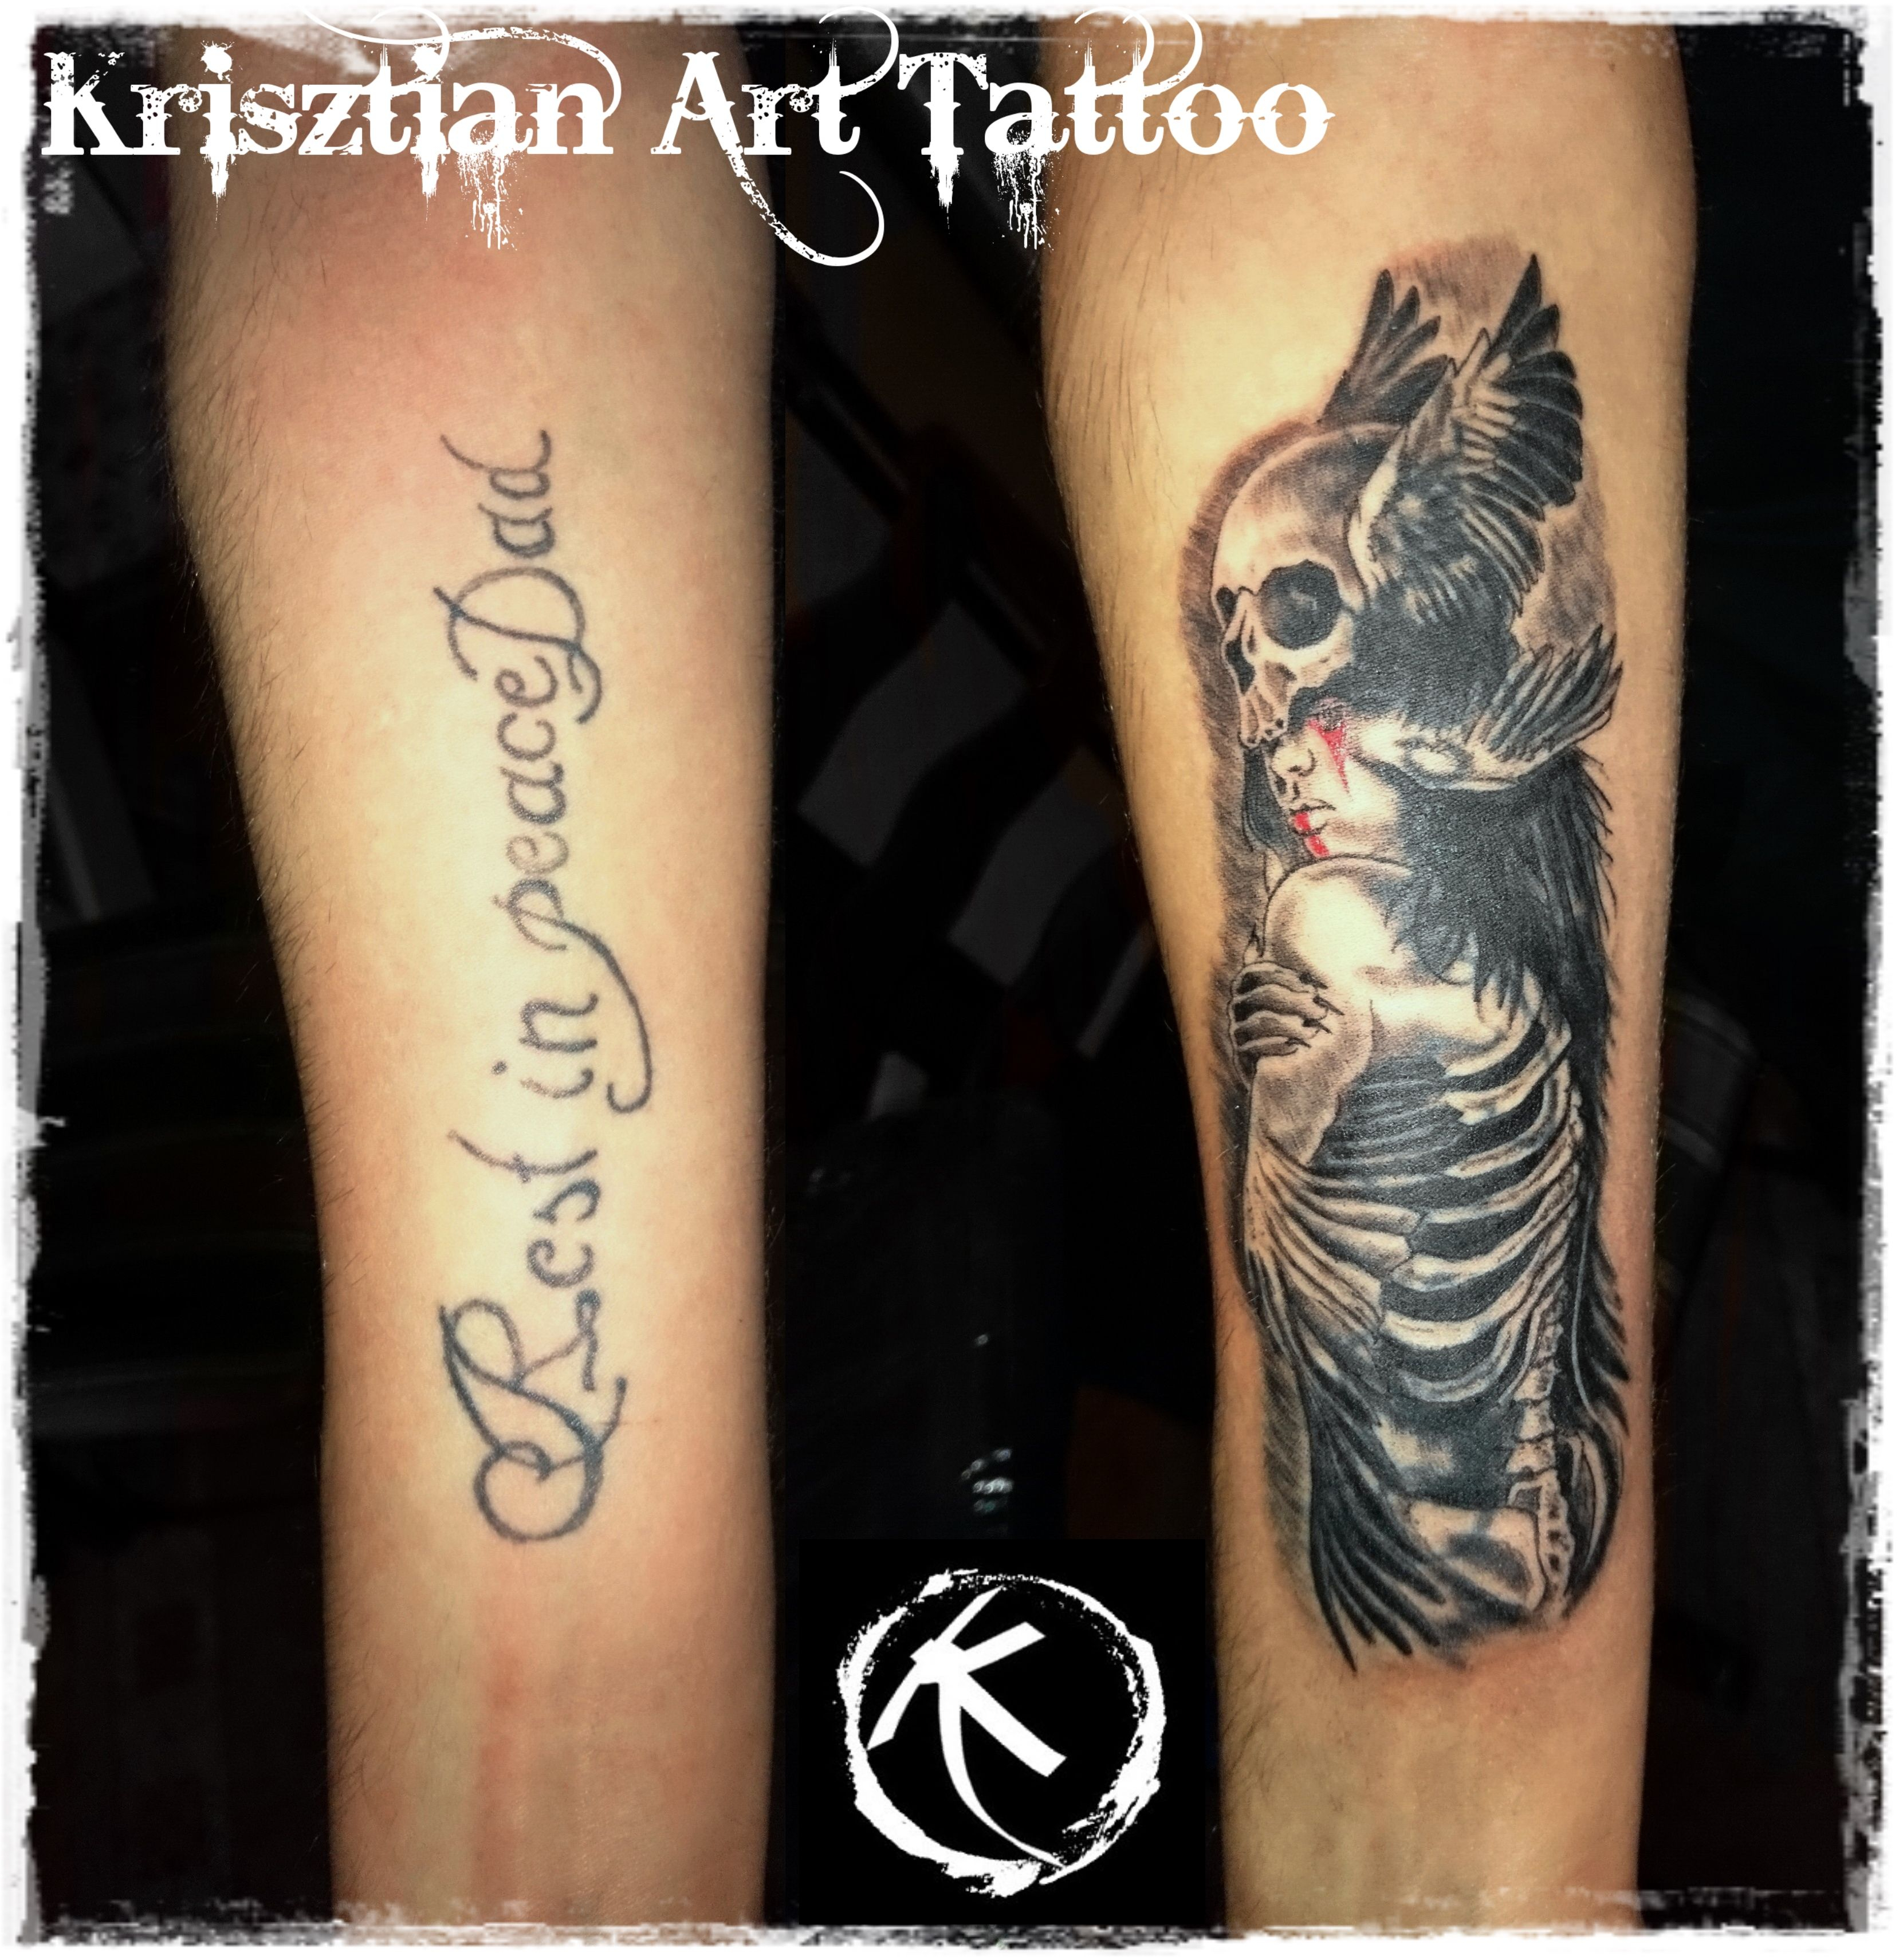 Krisztian Art Tattoo Cover Up Tattoo Forearm Skull And Girl pertaining to sizing 3322 X 3422